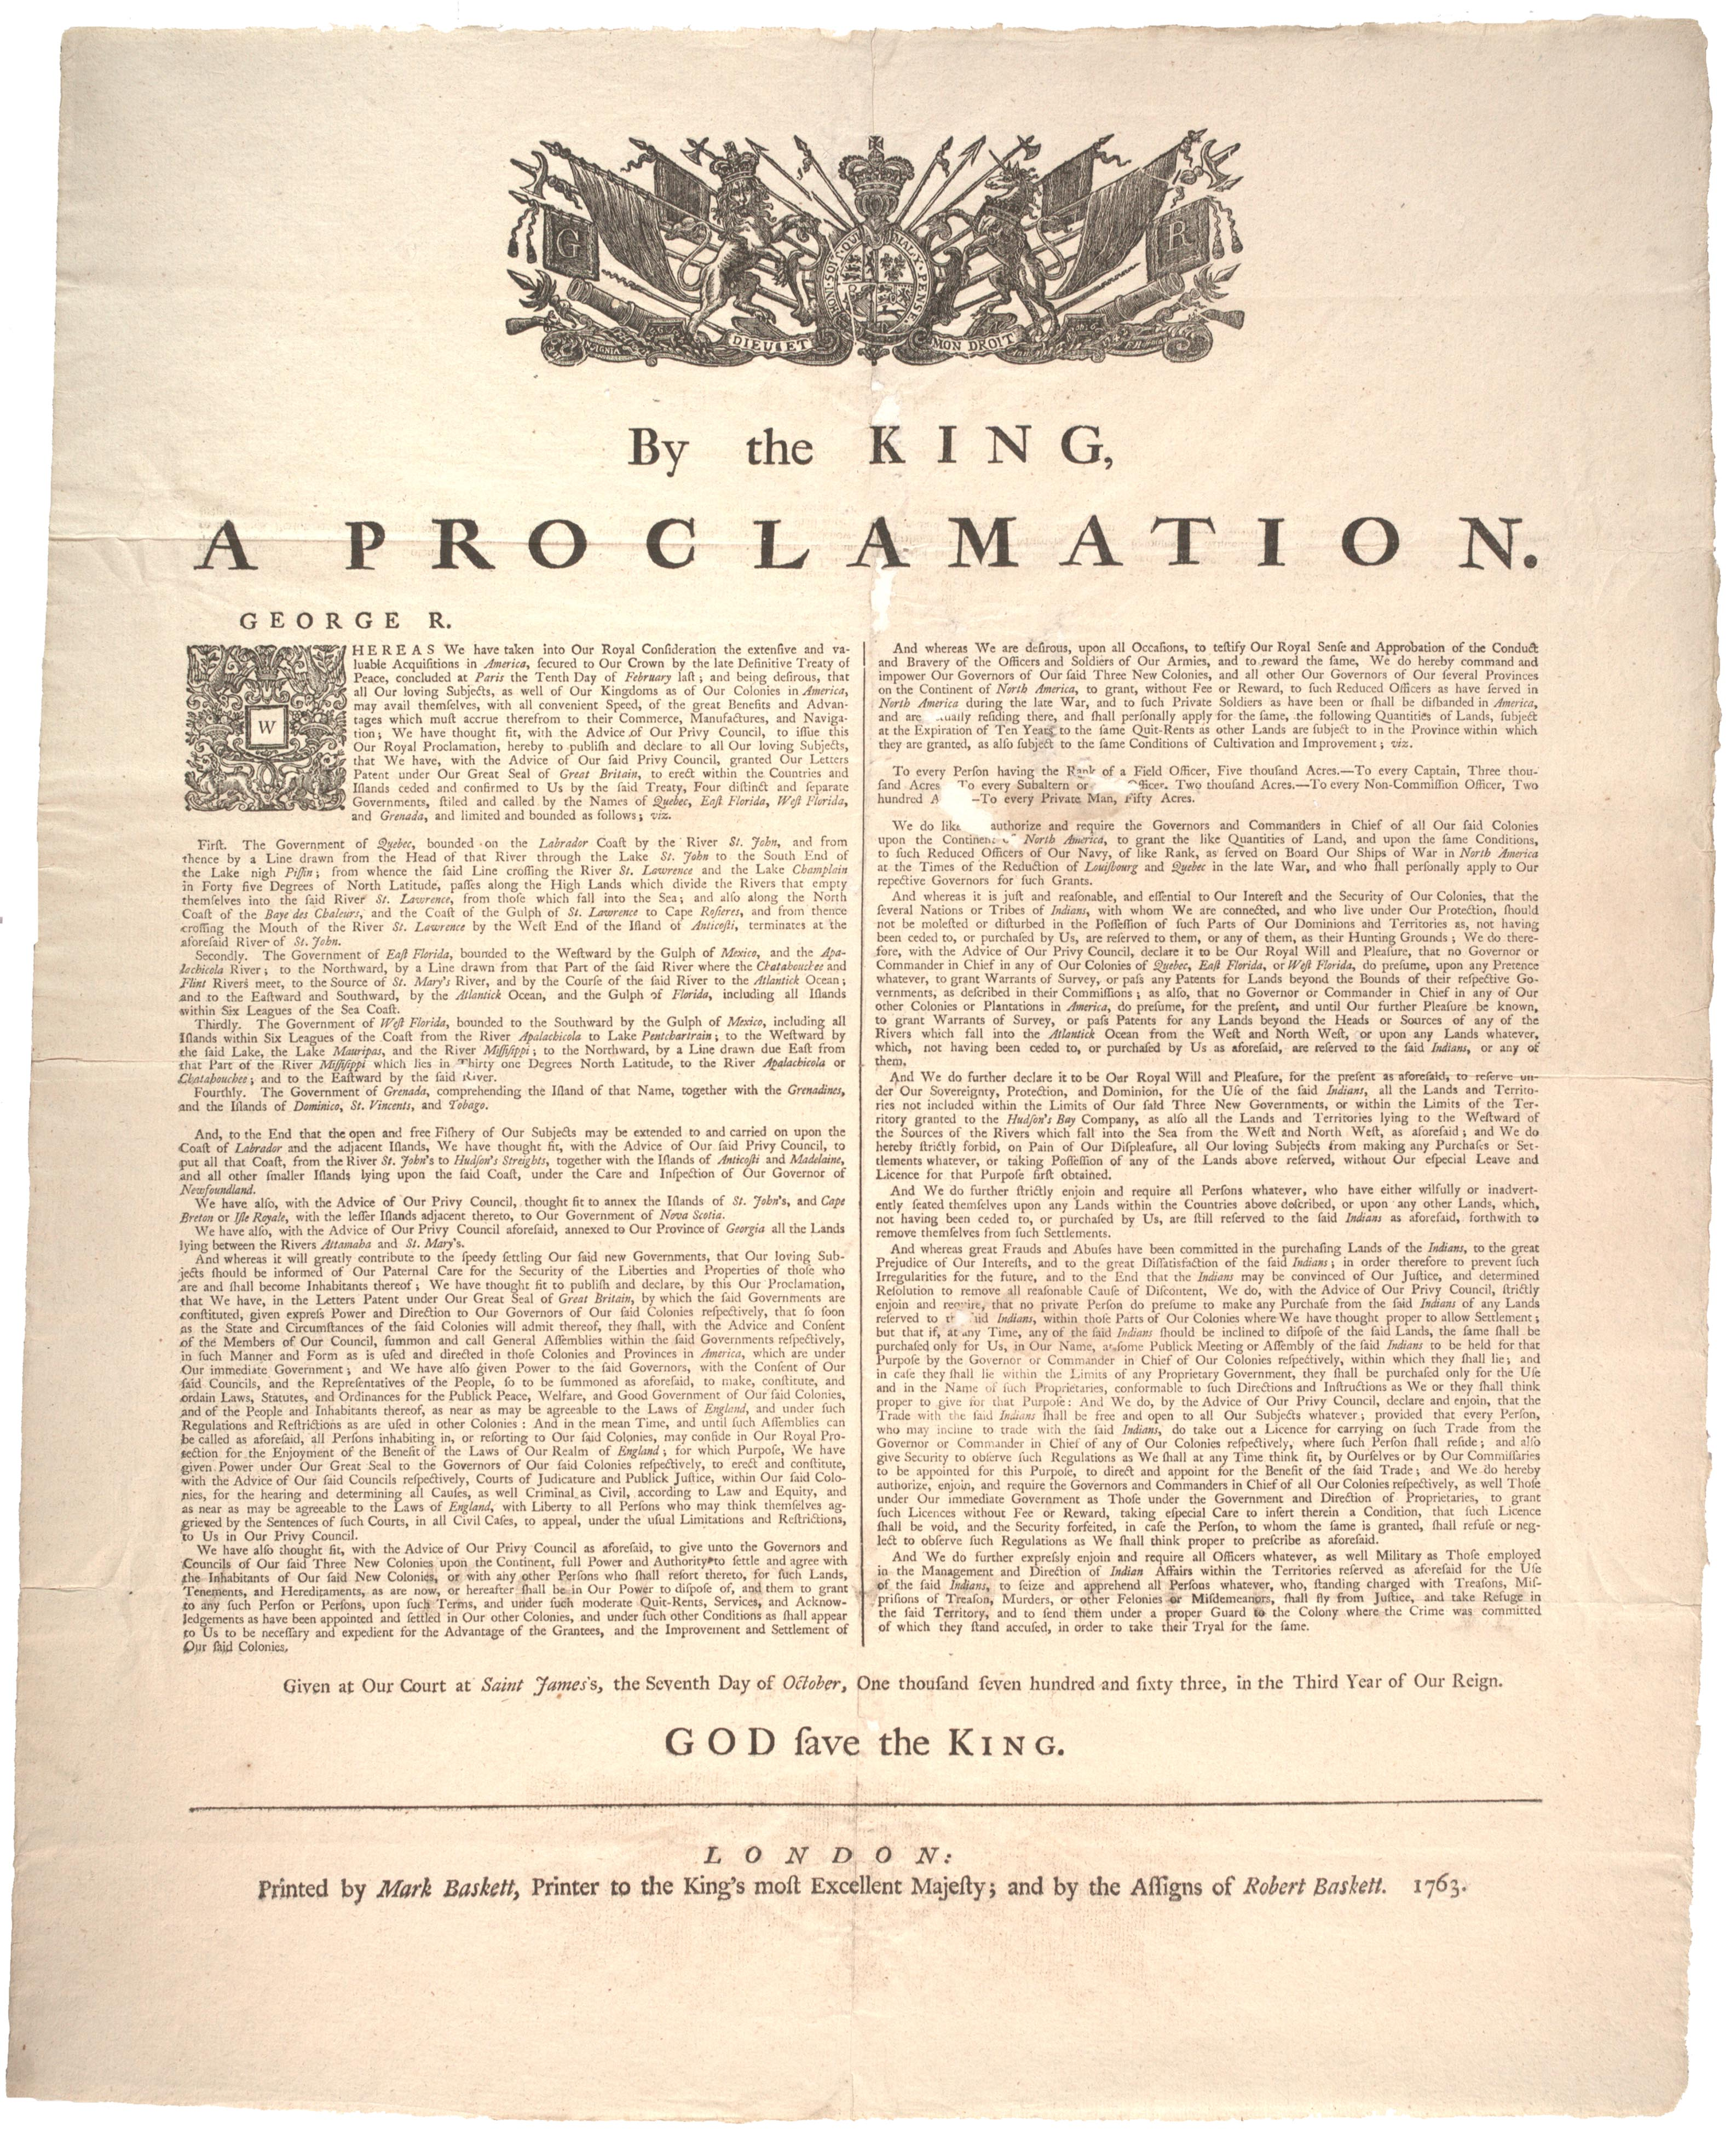 King George III's Proclamation of 1763 (Gilder Lehrman Collection)